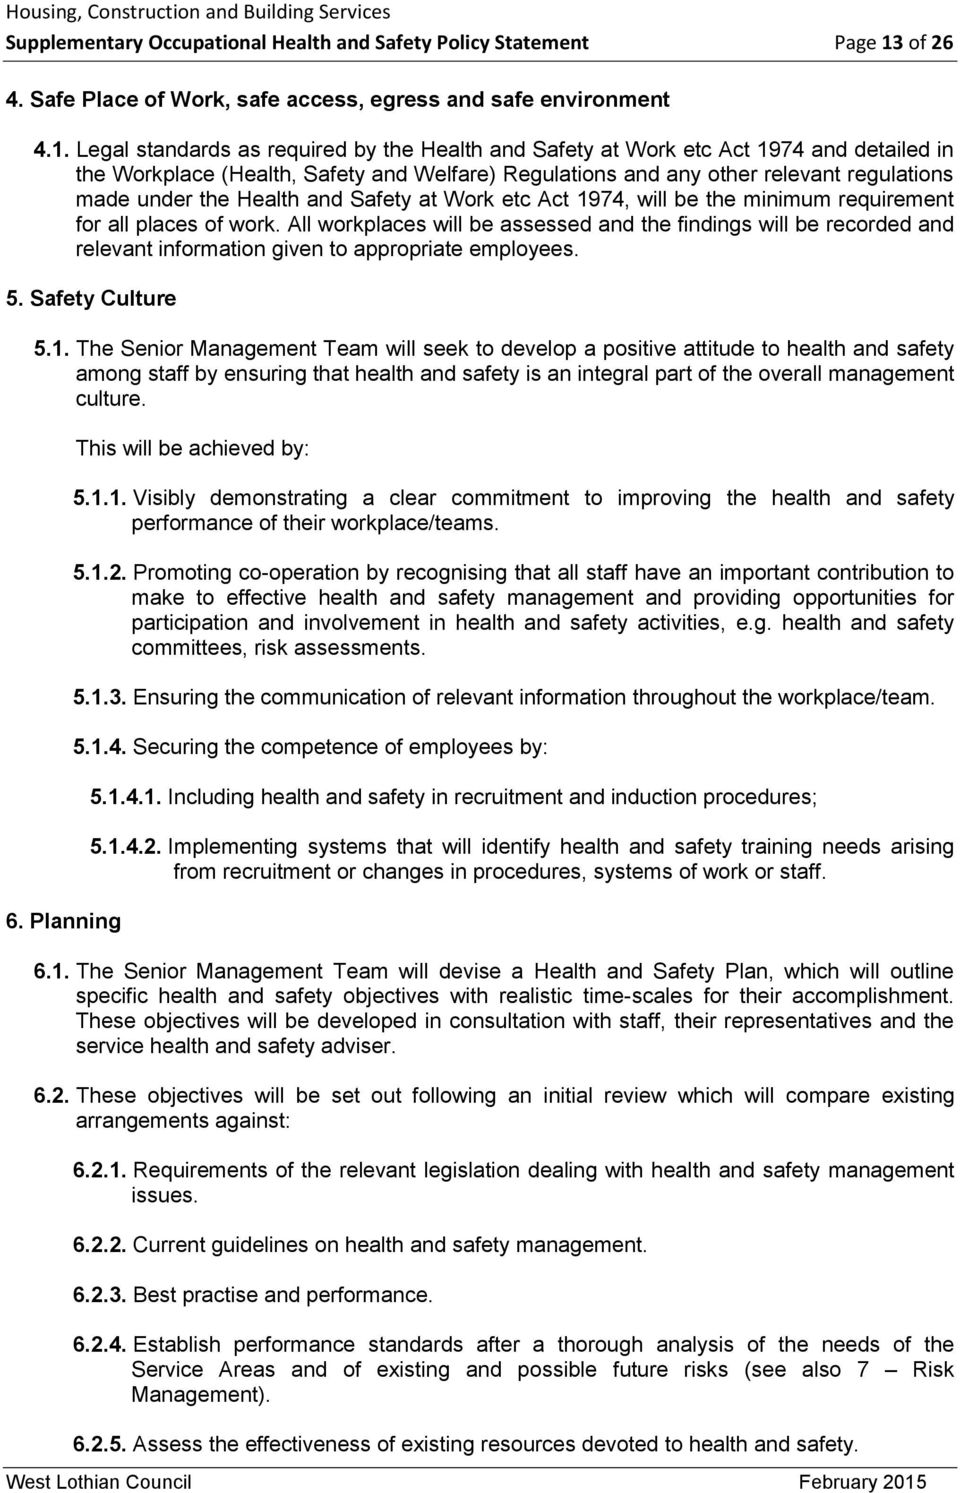 Legal standards as required by the Health and Safety at Work etc Act 1974 and detailed in the Workplace (Health, Safety and Welfare) Regulations and any other relevant regulations made under the